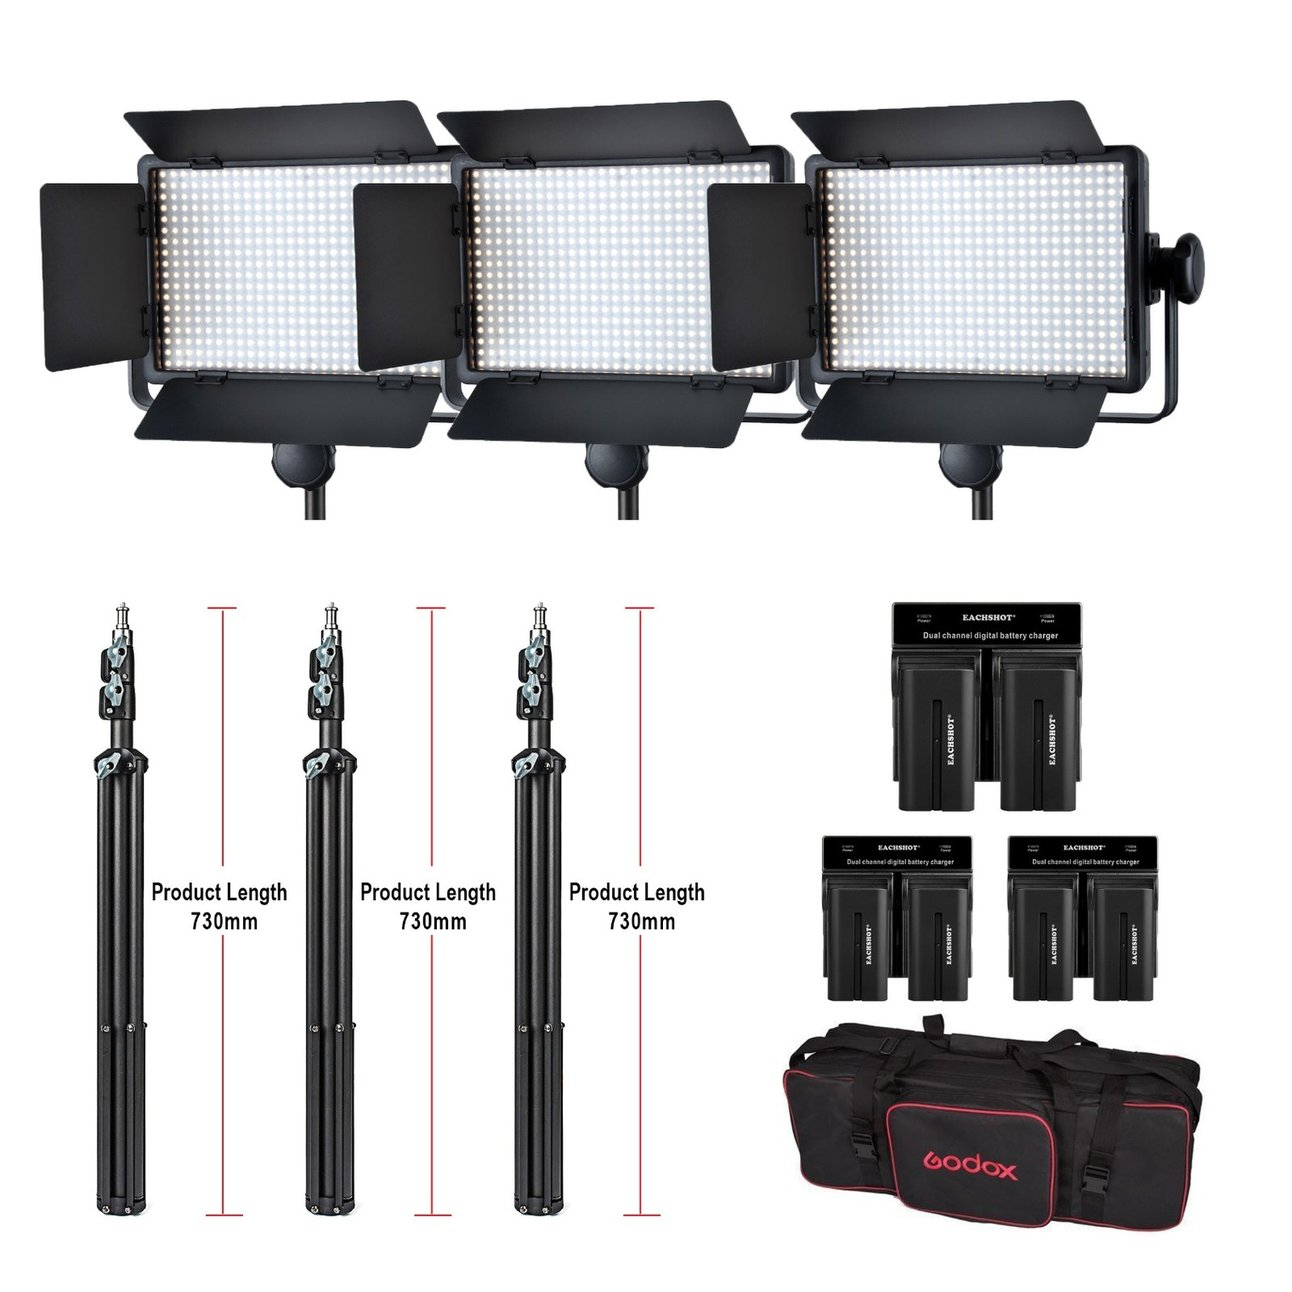 Godox Professional LED Video Light LED500C Changeable Version 3300K-5600K + battery+Dual Charger +2M light stand godox professional led video light led1000c changeable version 3300k 5600k new arrival free shipping